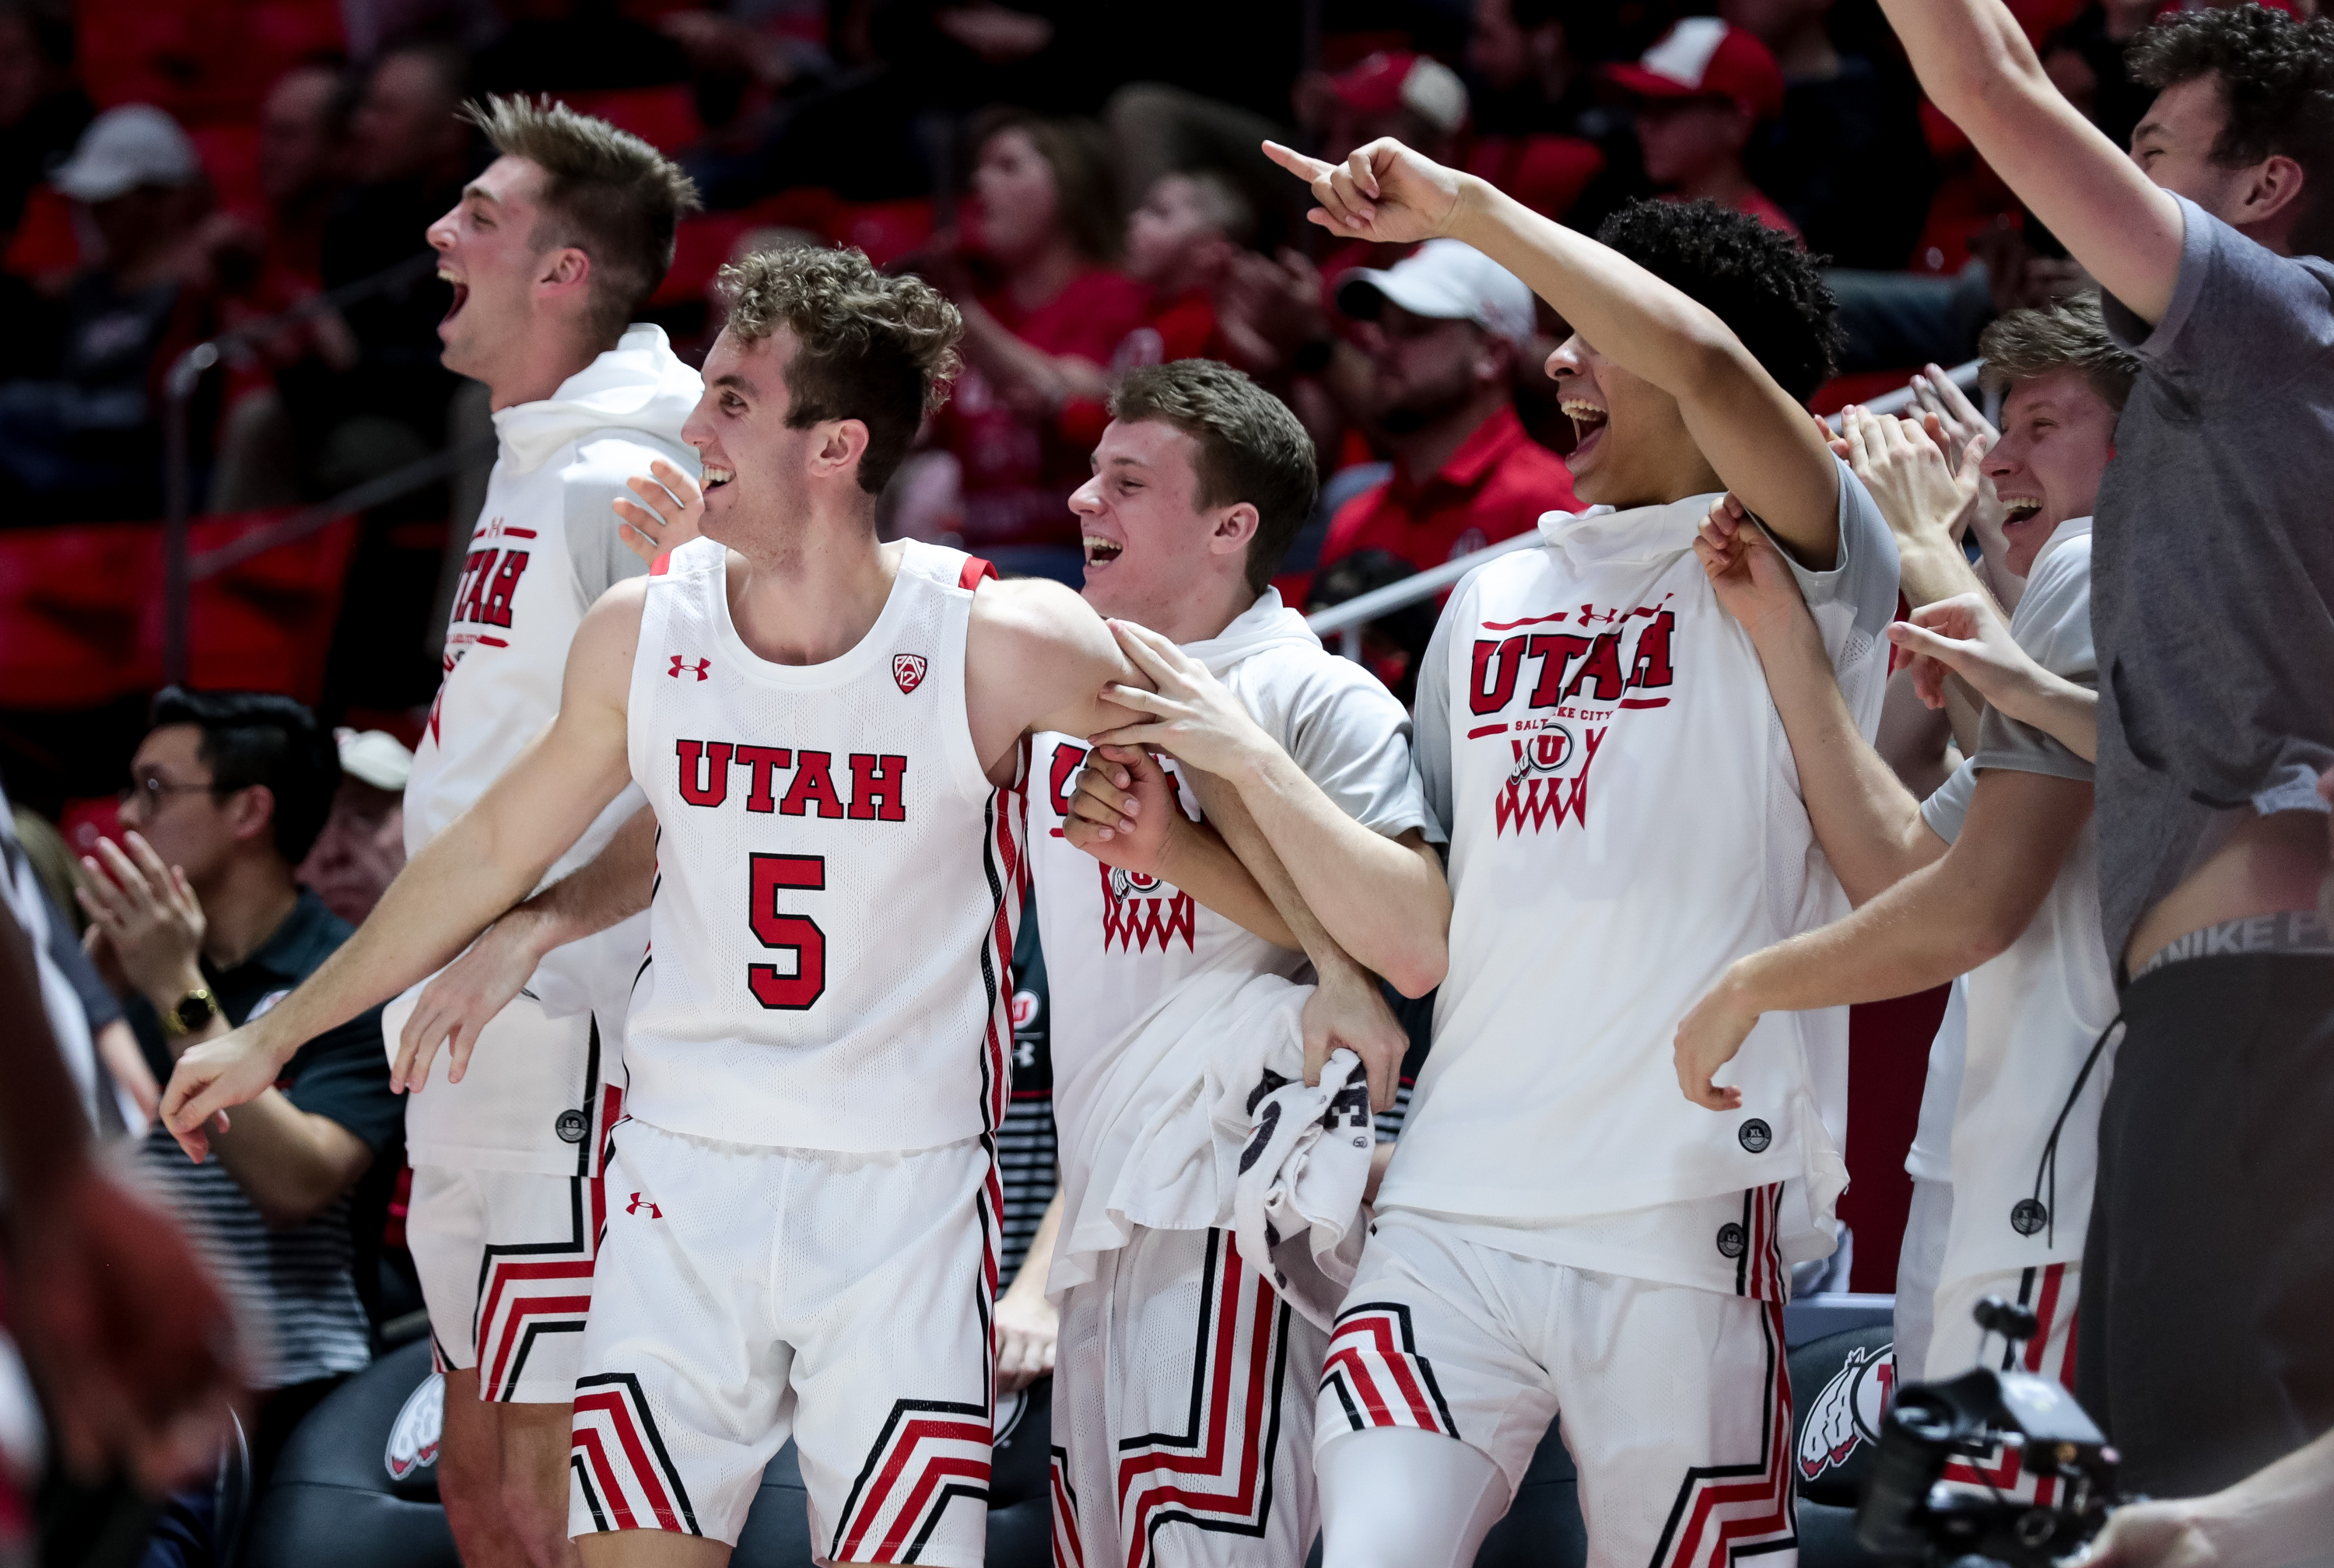 Utah Utes players cheer as they lead the Washington State Cougars in the final moments of the game at the Huntsman Center in Salt Lake City on Saturday, Jan. 25, 2020.